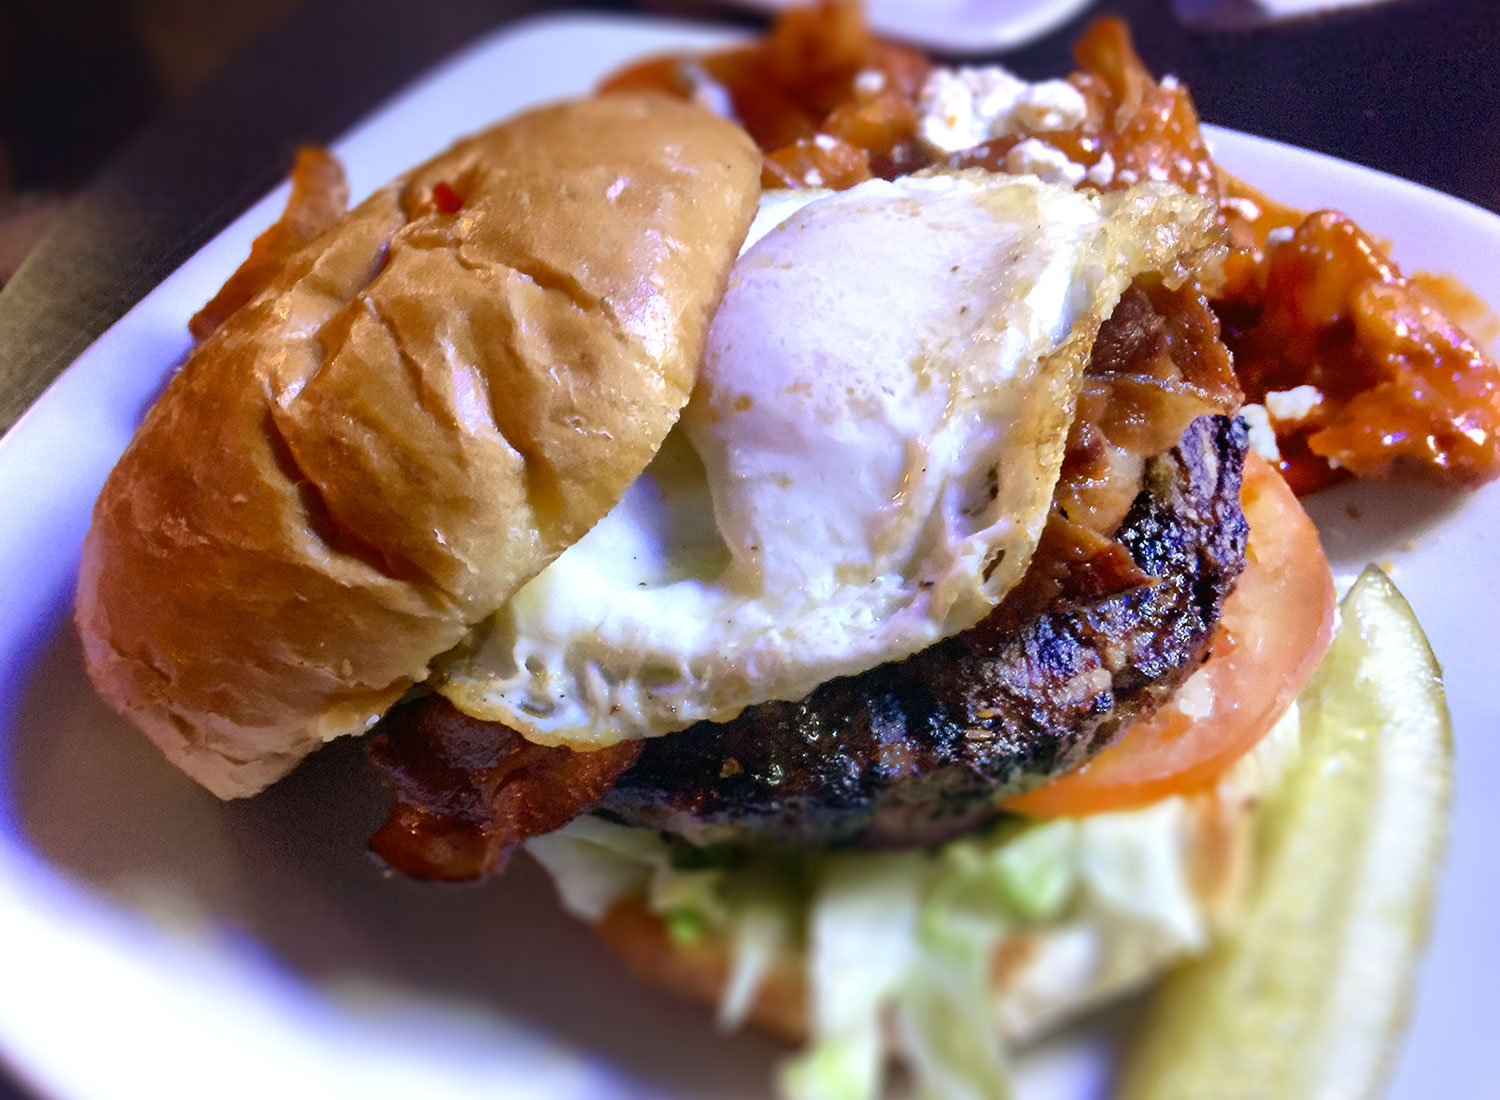 The Pork Belly Burger: Hey Misstir Bar & Grill, Santa Rosa